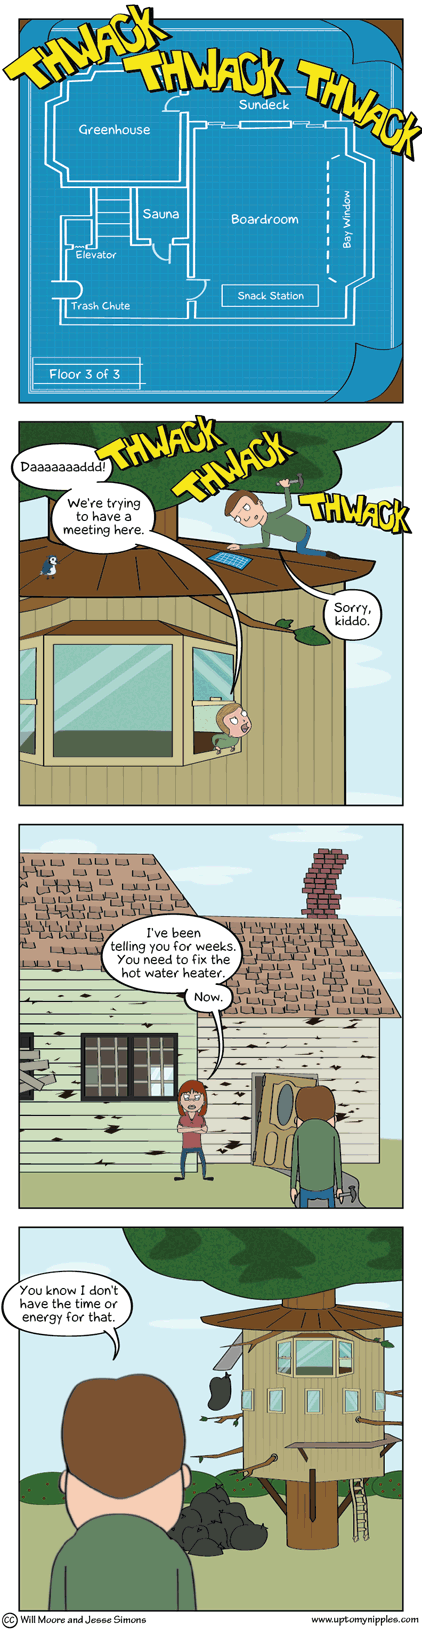 Home Improvement comic